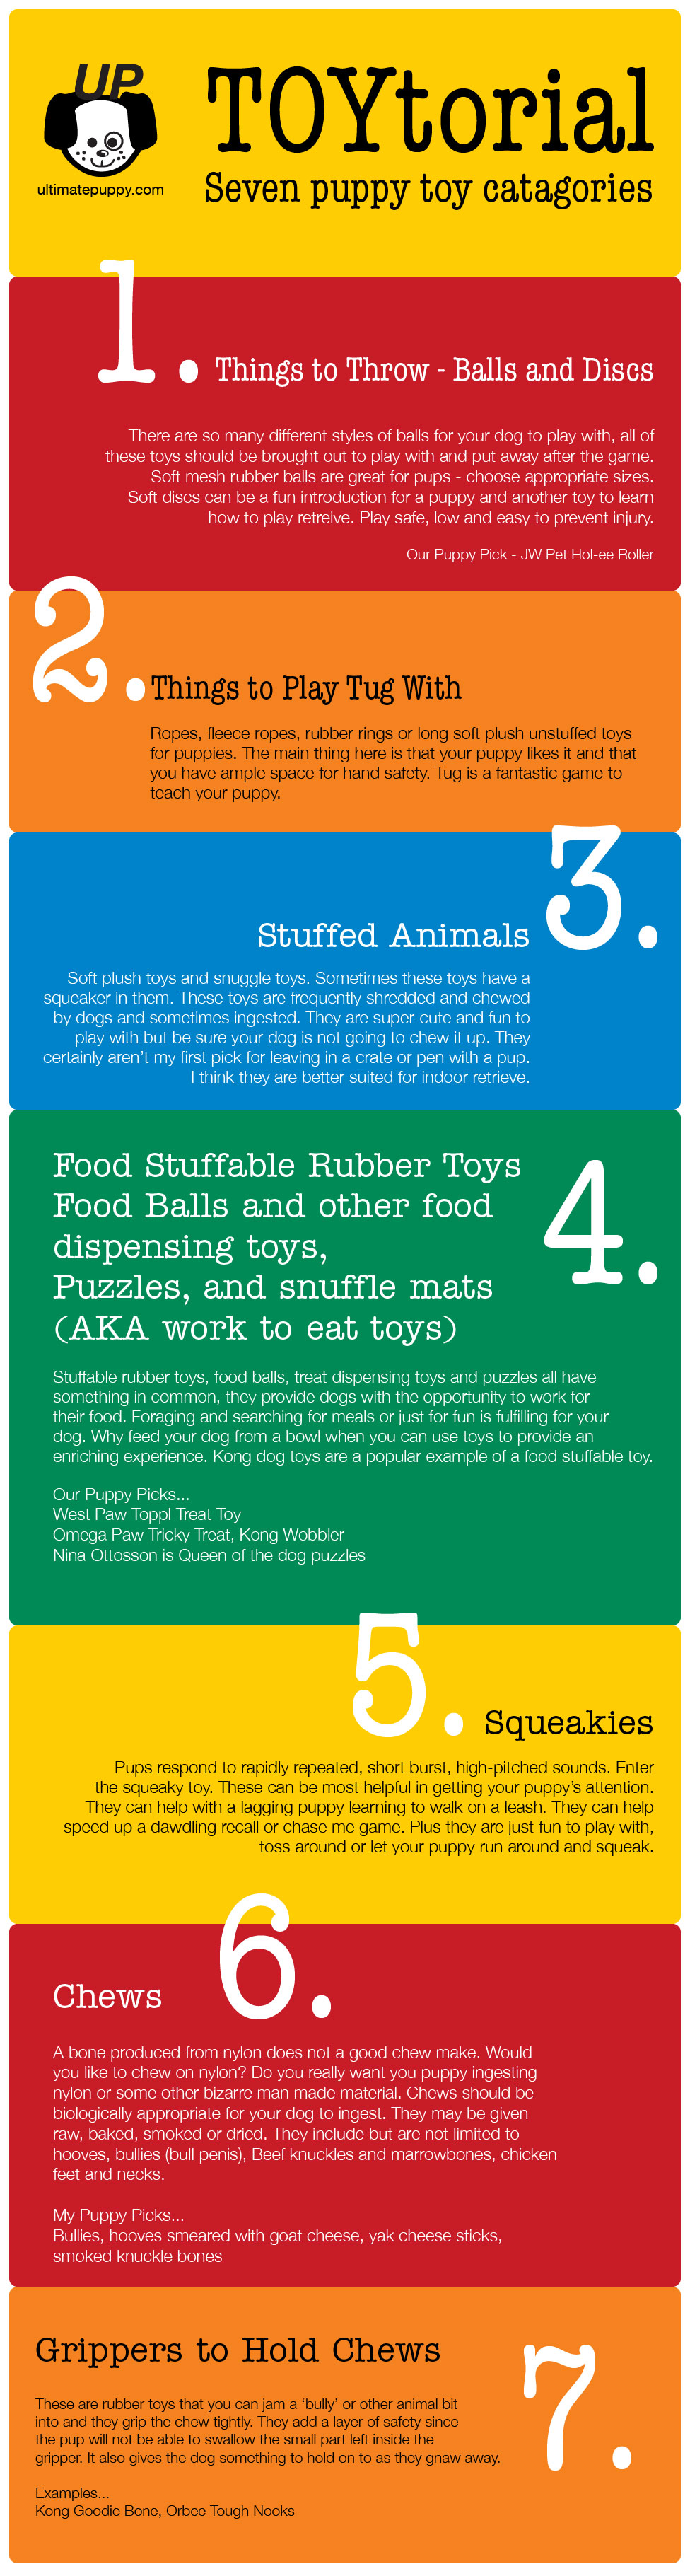 An ultimatepuppy.com graphic of 7 categories of puppy toys